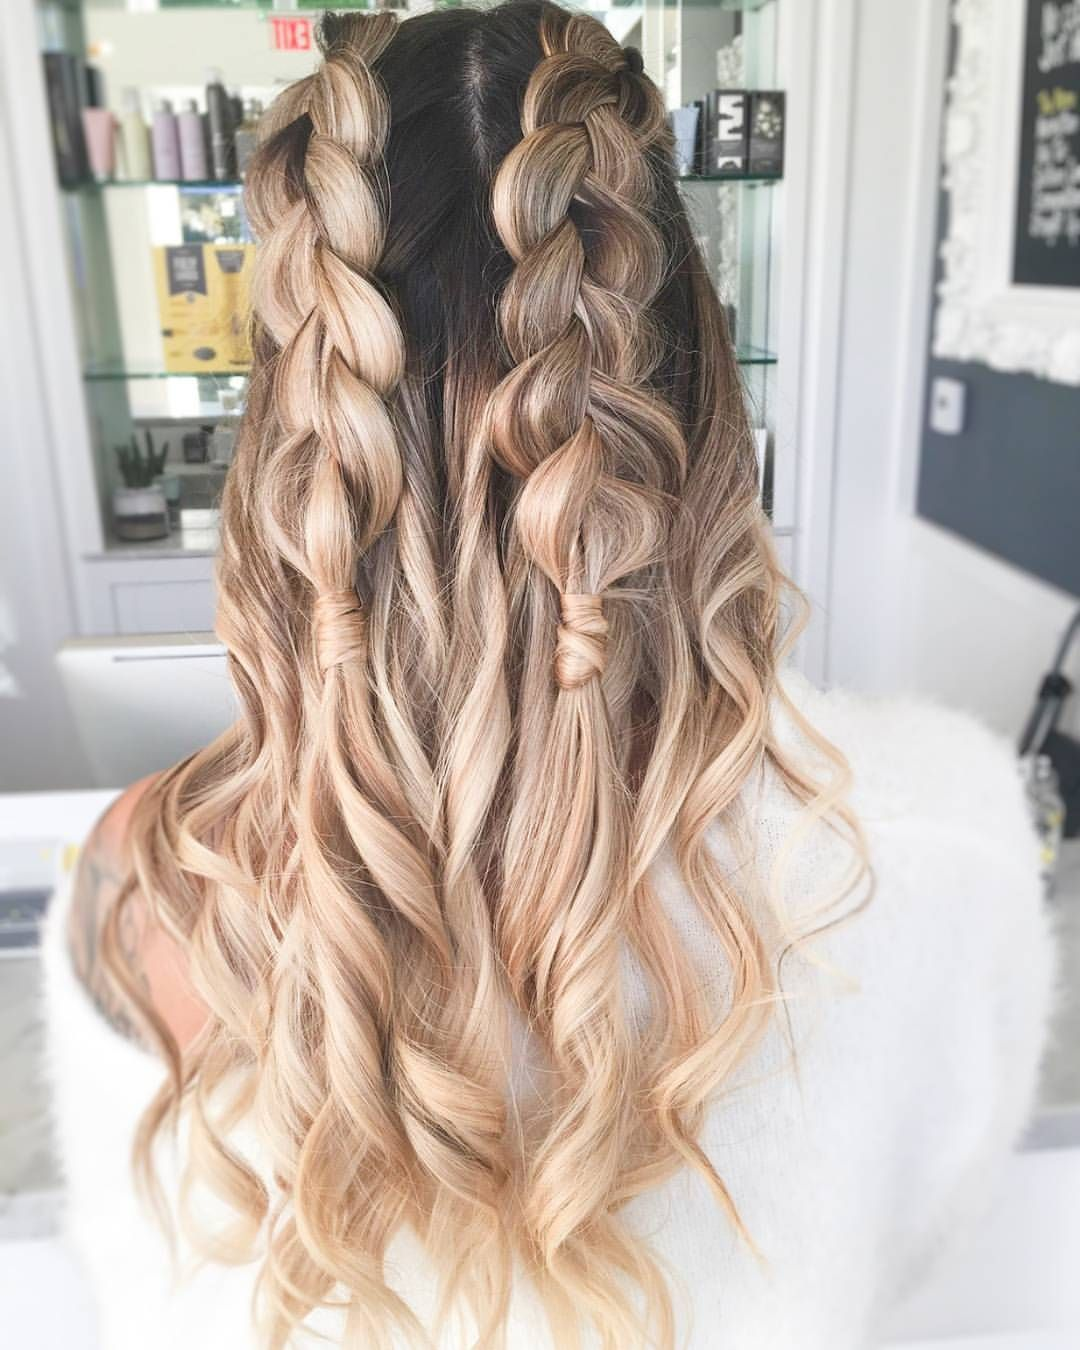 2 941 Likes 21 Comments Drybar Thedrybar On Instagram Two Braids Are Better Than One Dbstylis Braided Hairstyles Braids With Curls Short Hair Styles